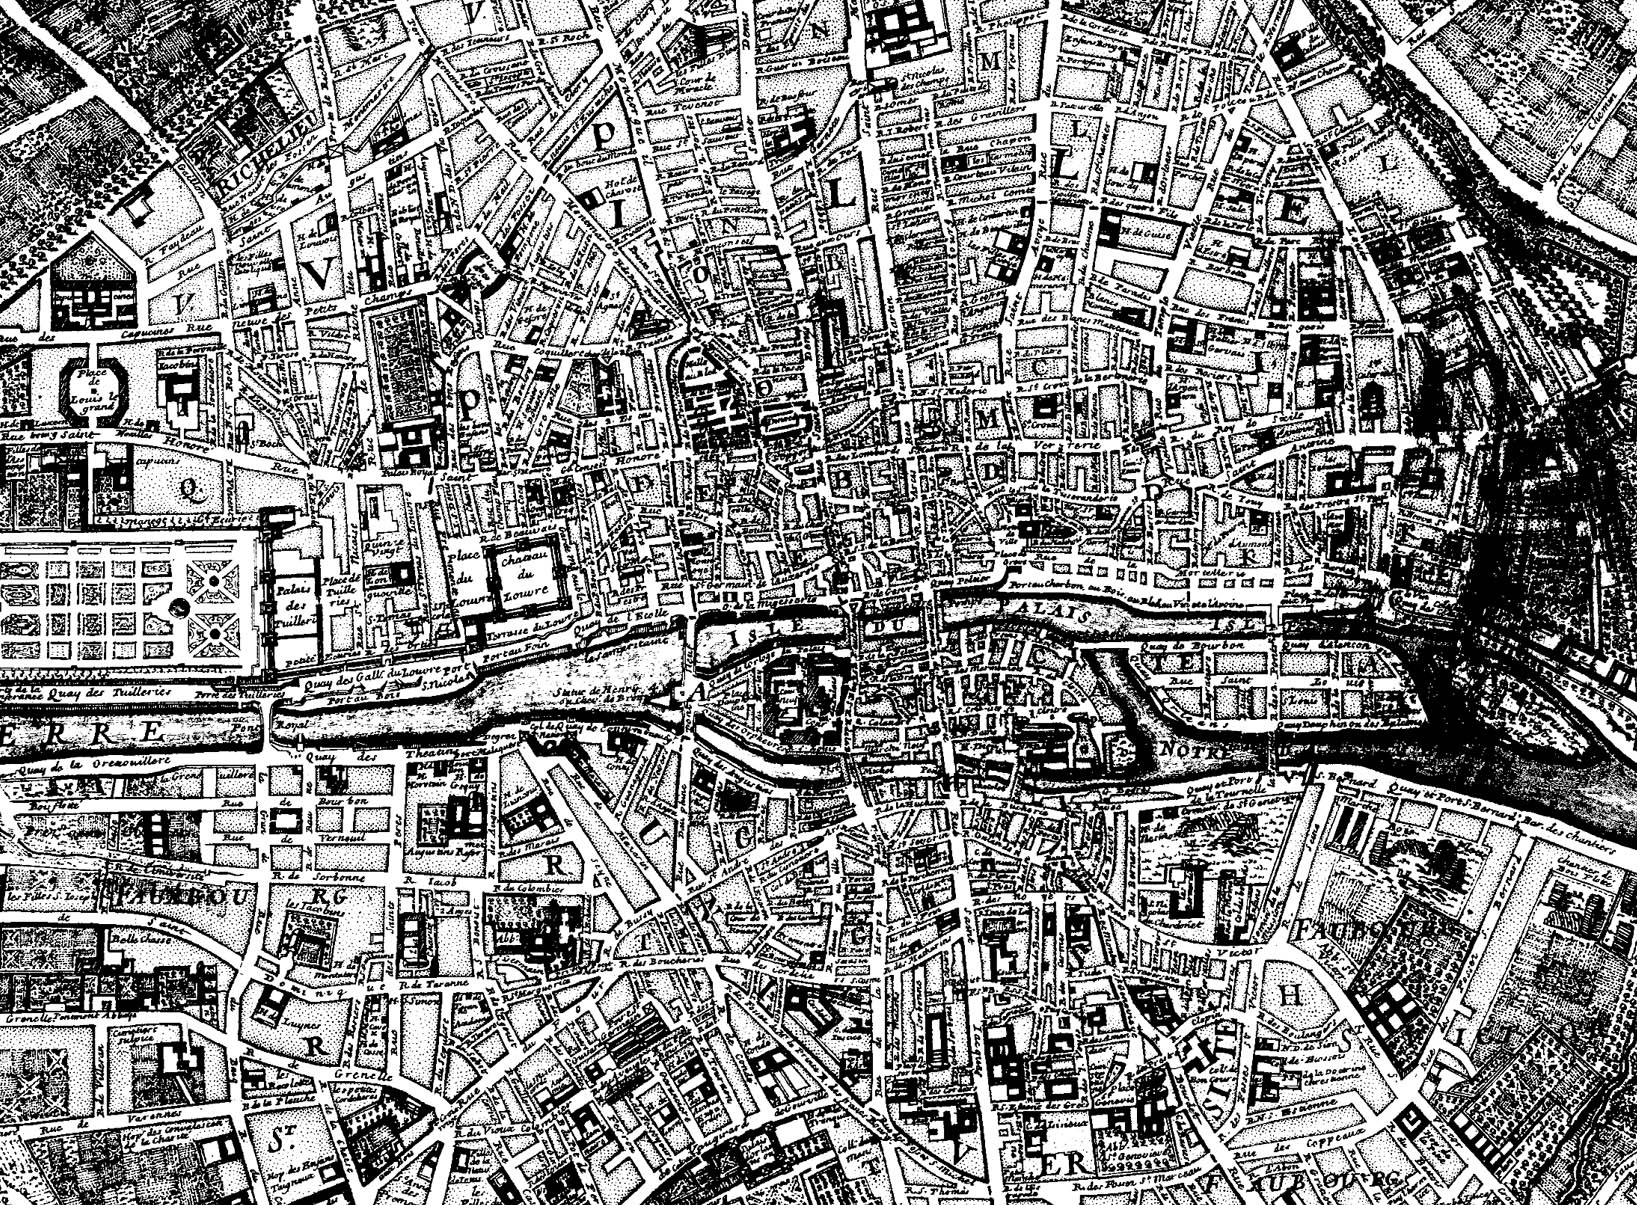 A map of Paris from 1750, with clearly defined streets, and a lot of details